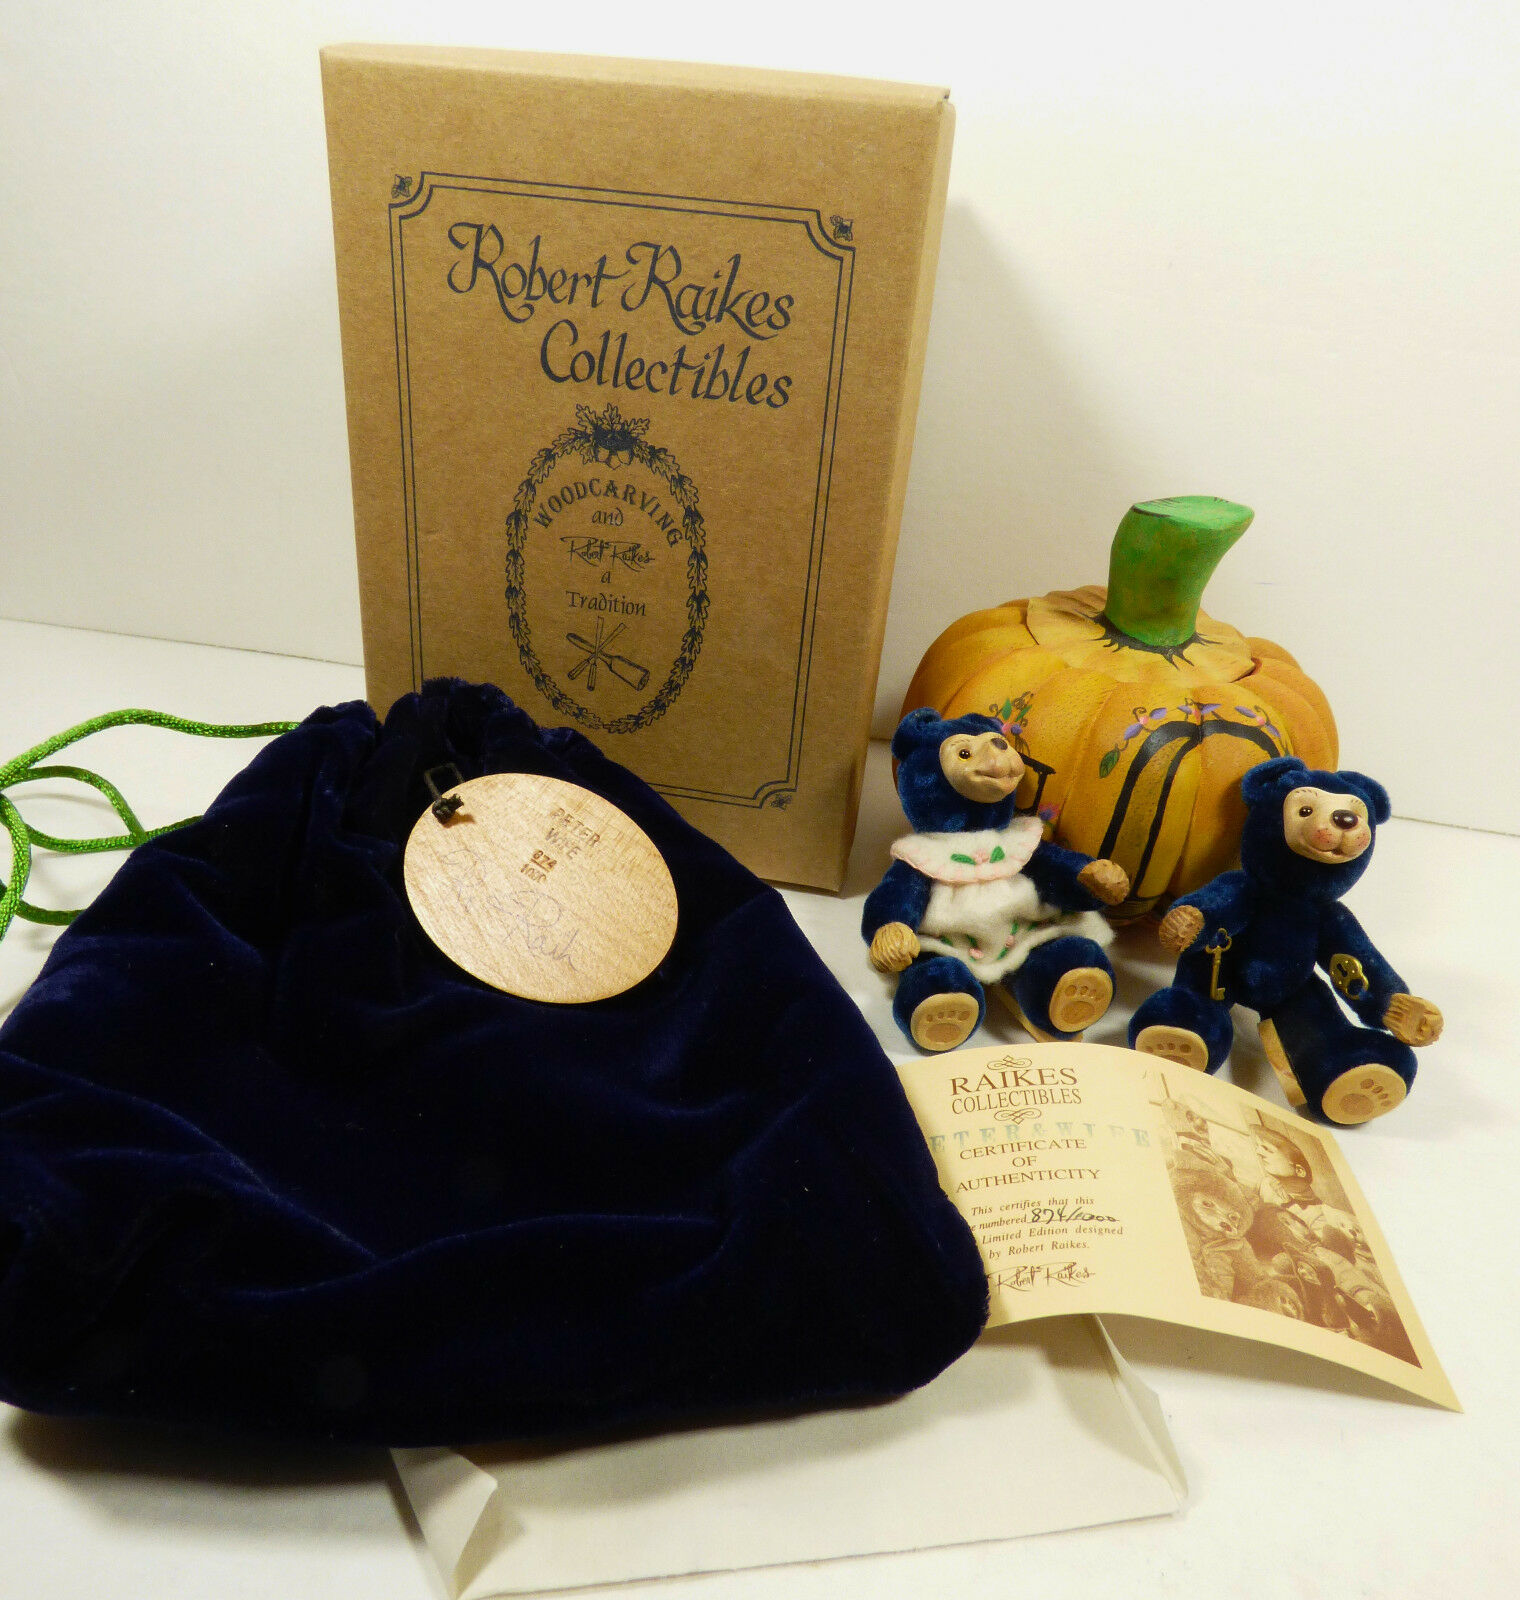 Robert Raikes Original Peter & Wife BEAR Pumpkin Figure set Mint box Signed COA